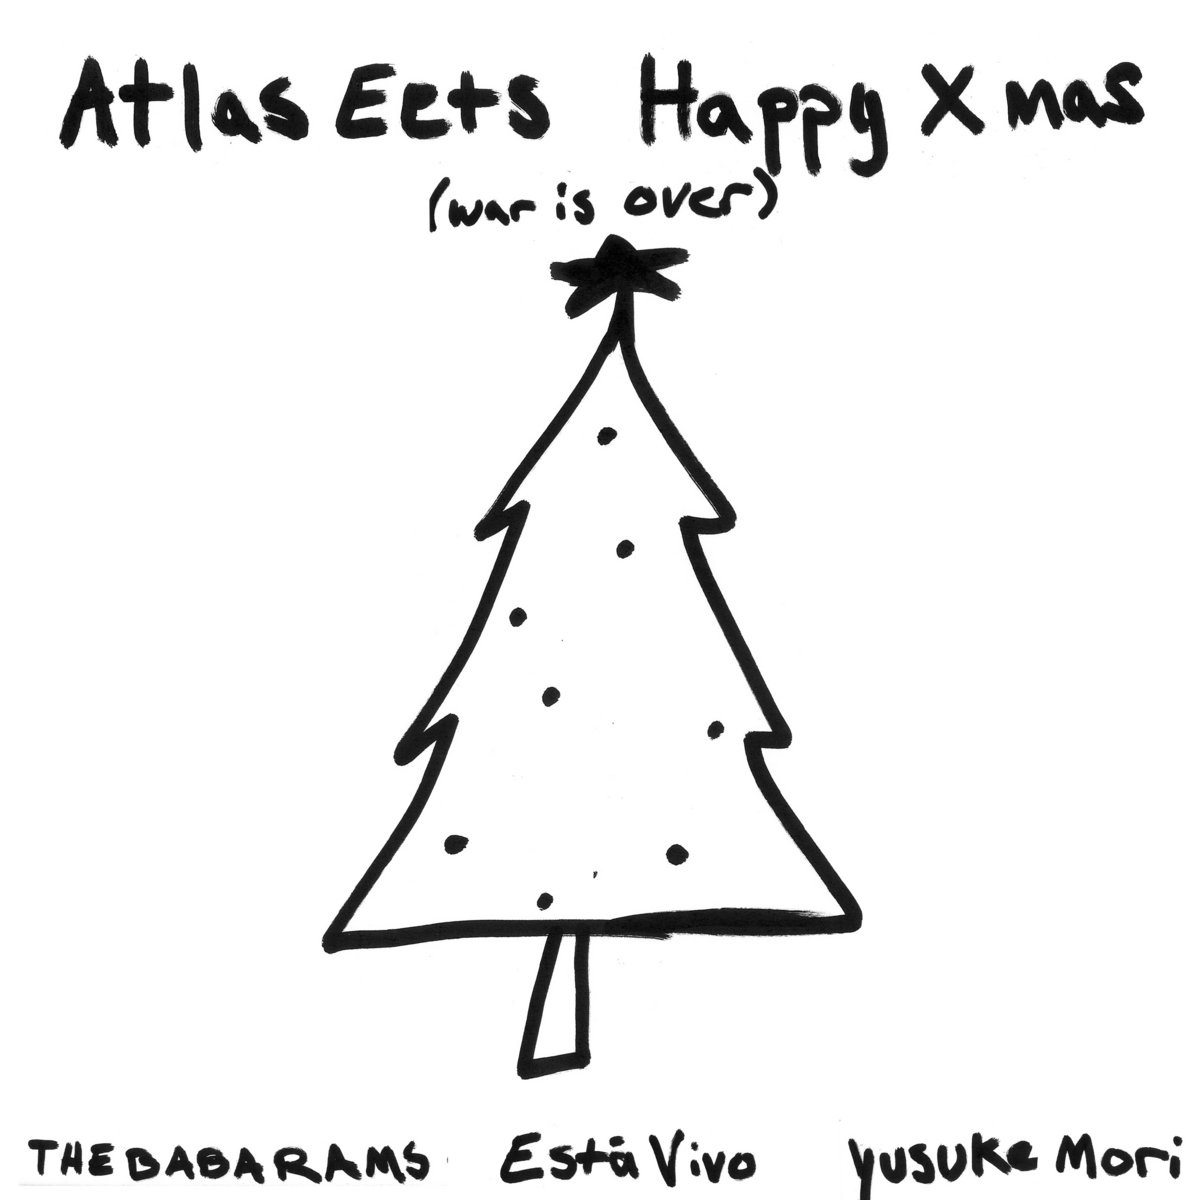 atlas eets happy xmas war is over